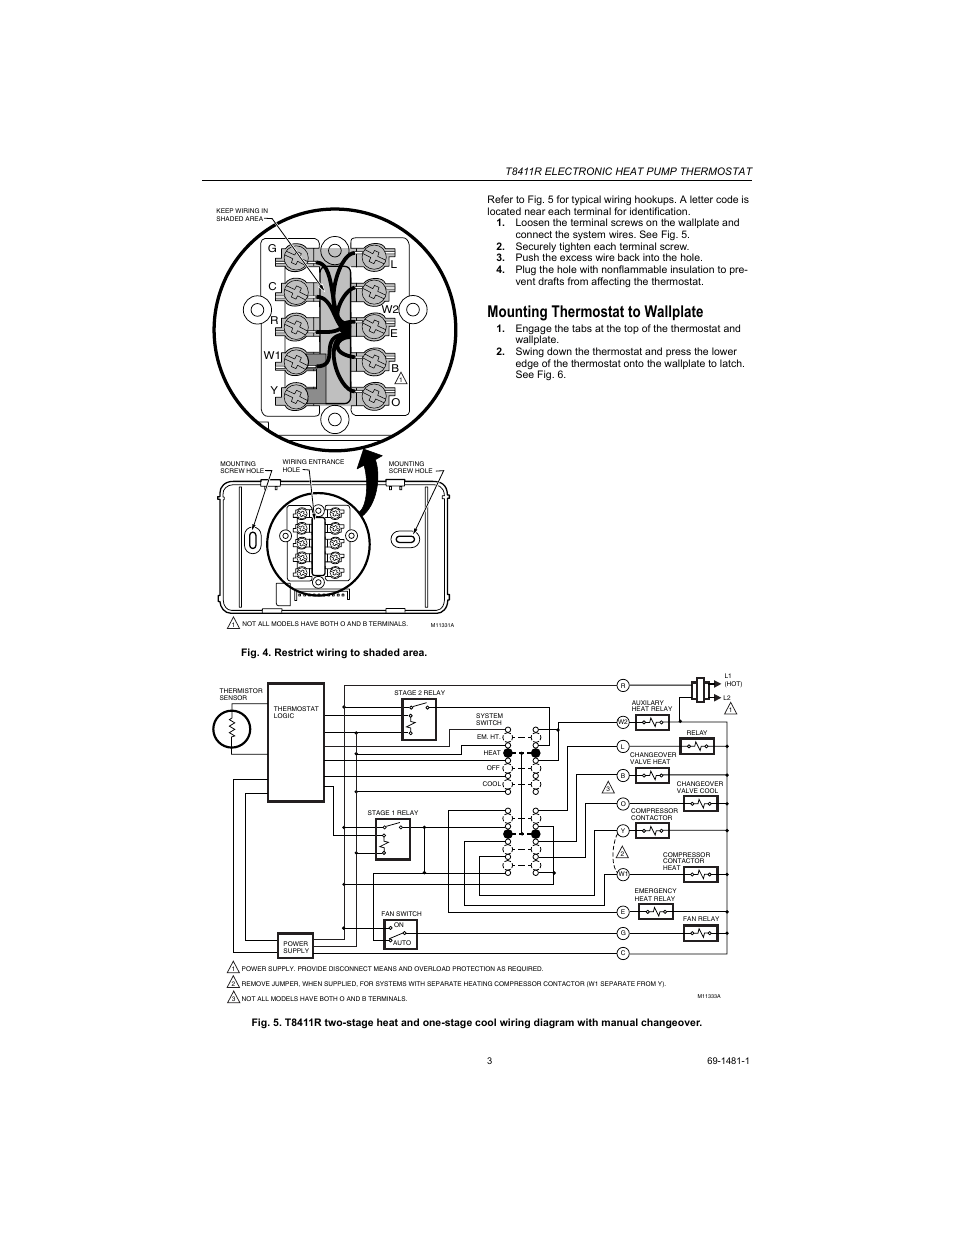 Honeywell T8411r Thermostat Wiring Diagram : 42 Wiring